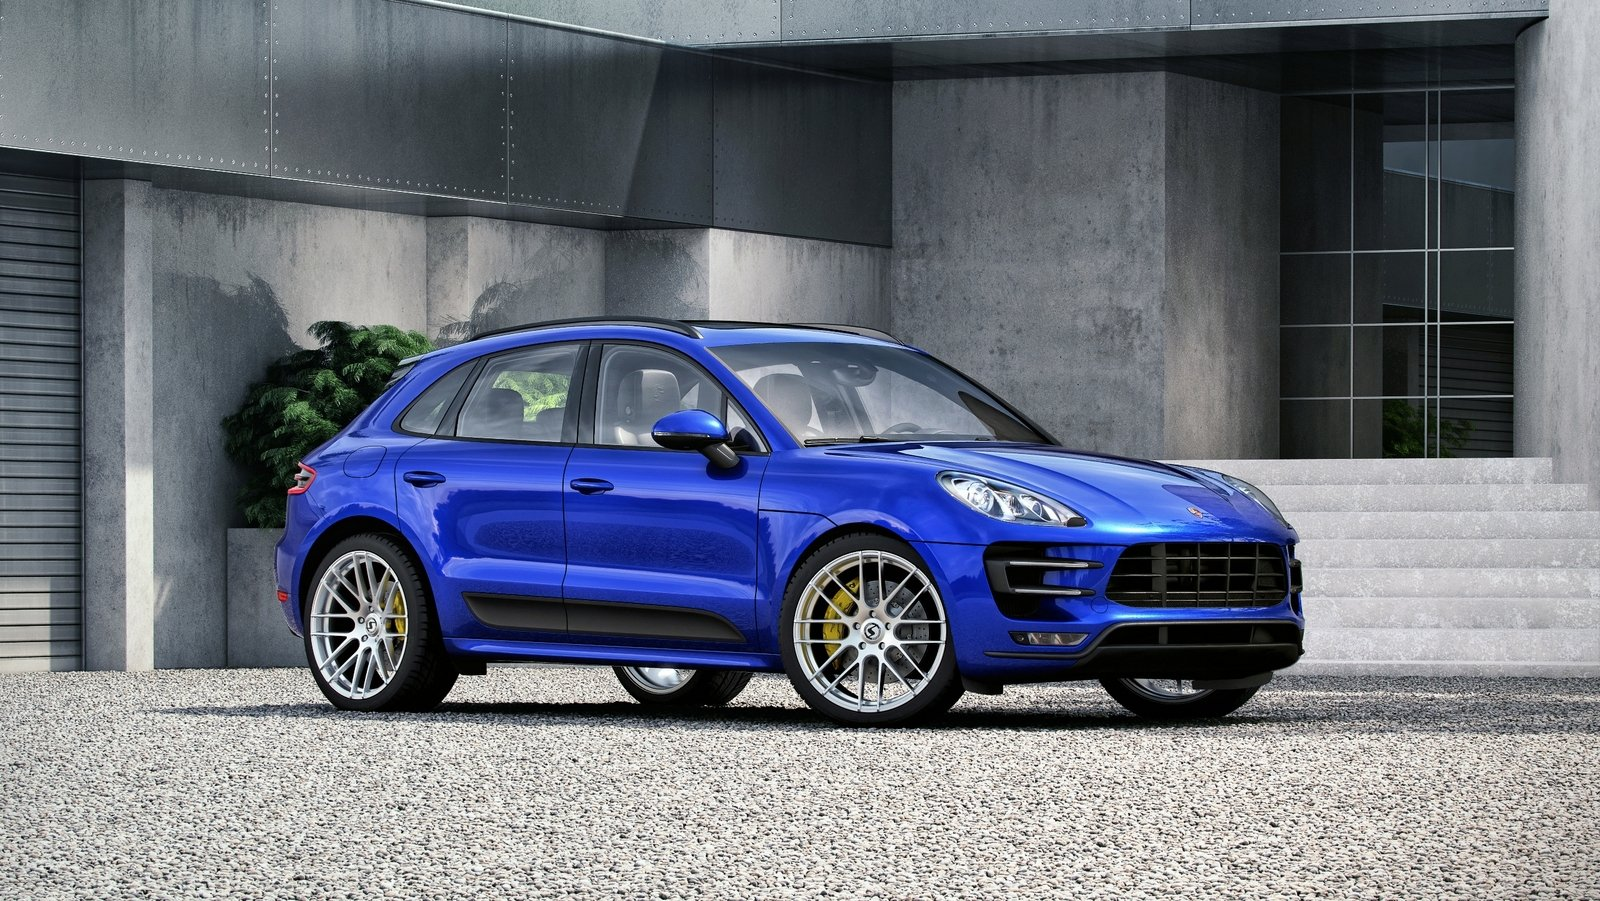 2016 porsche macan turbo by wimmer rs review top speed. Black Bedroom Furniture Sets. Home Design Ideas